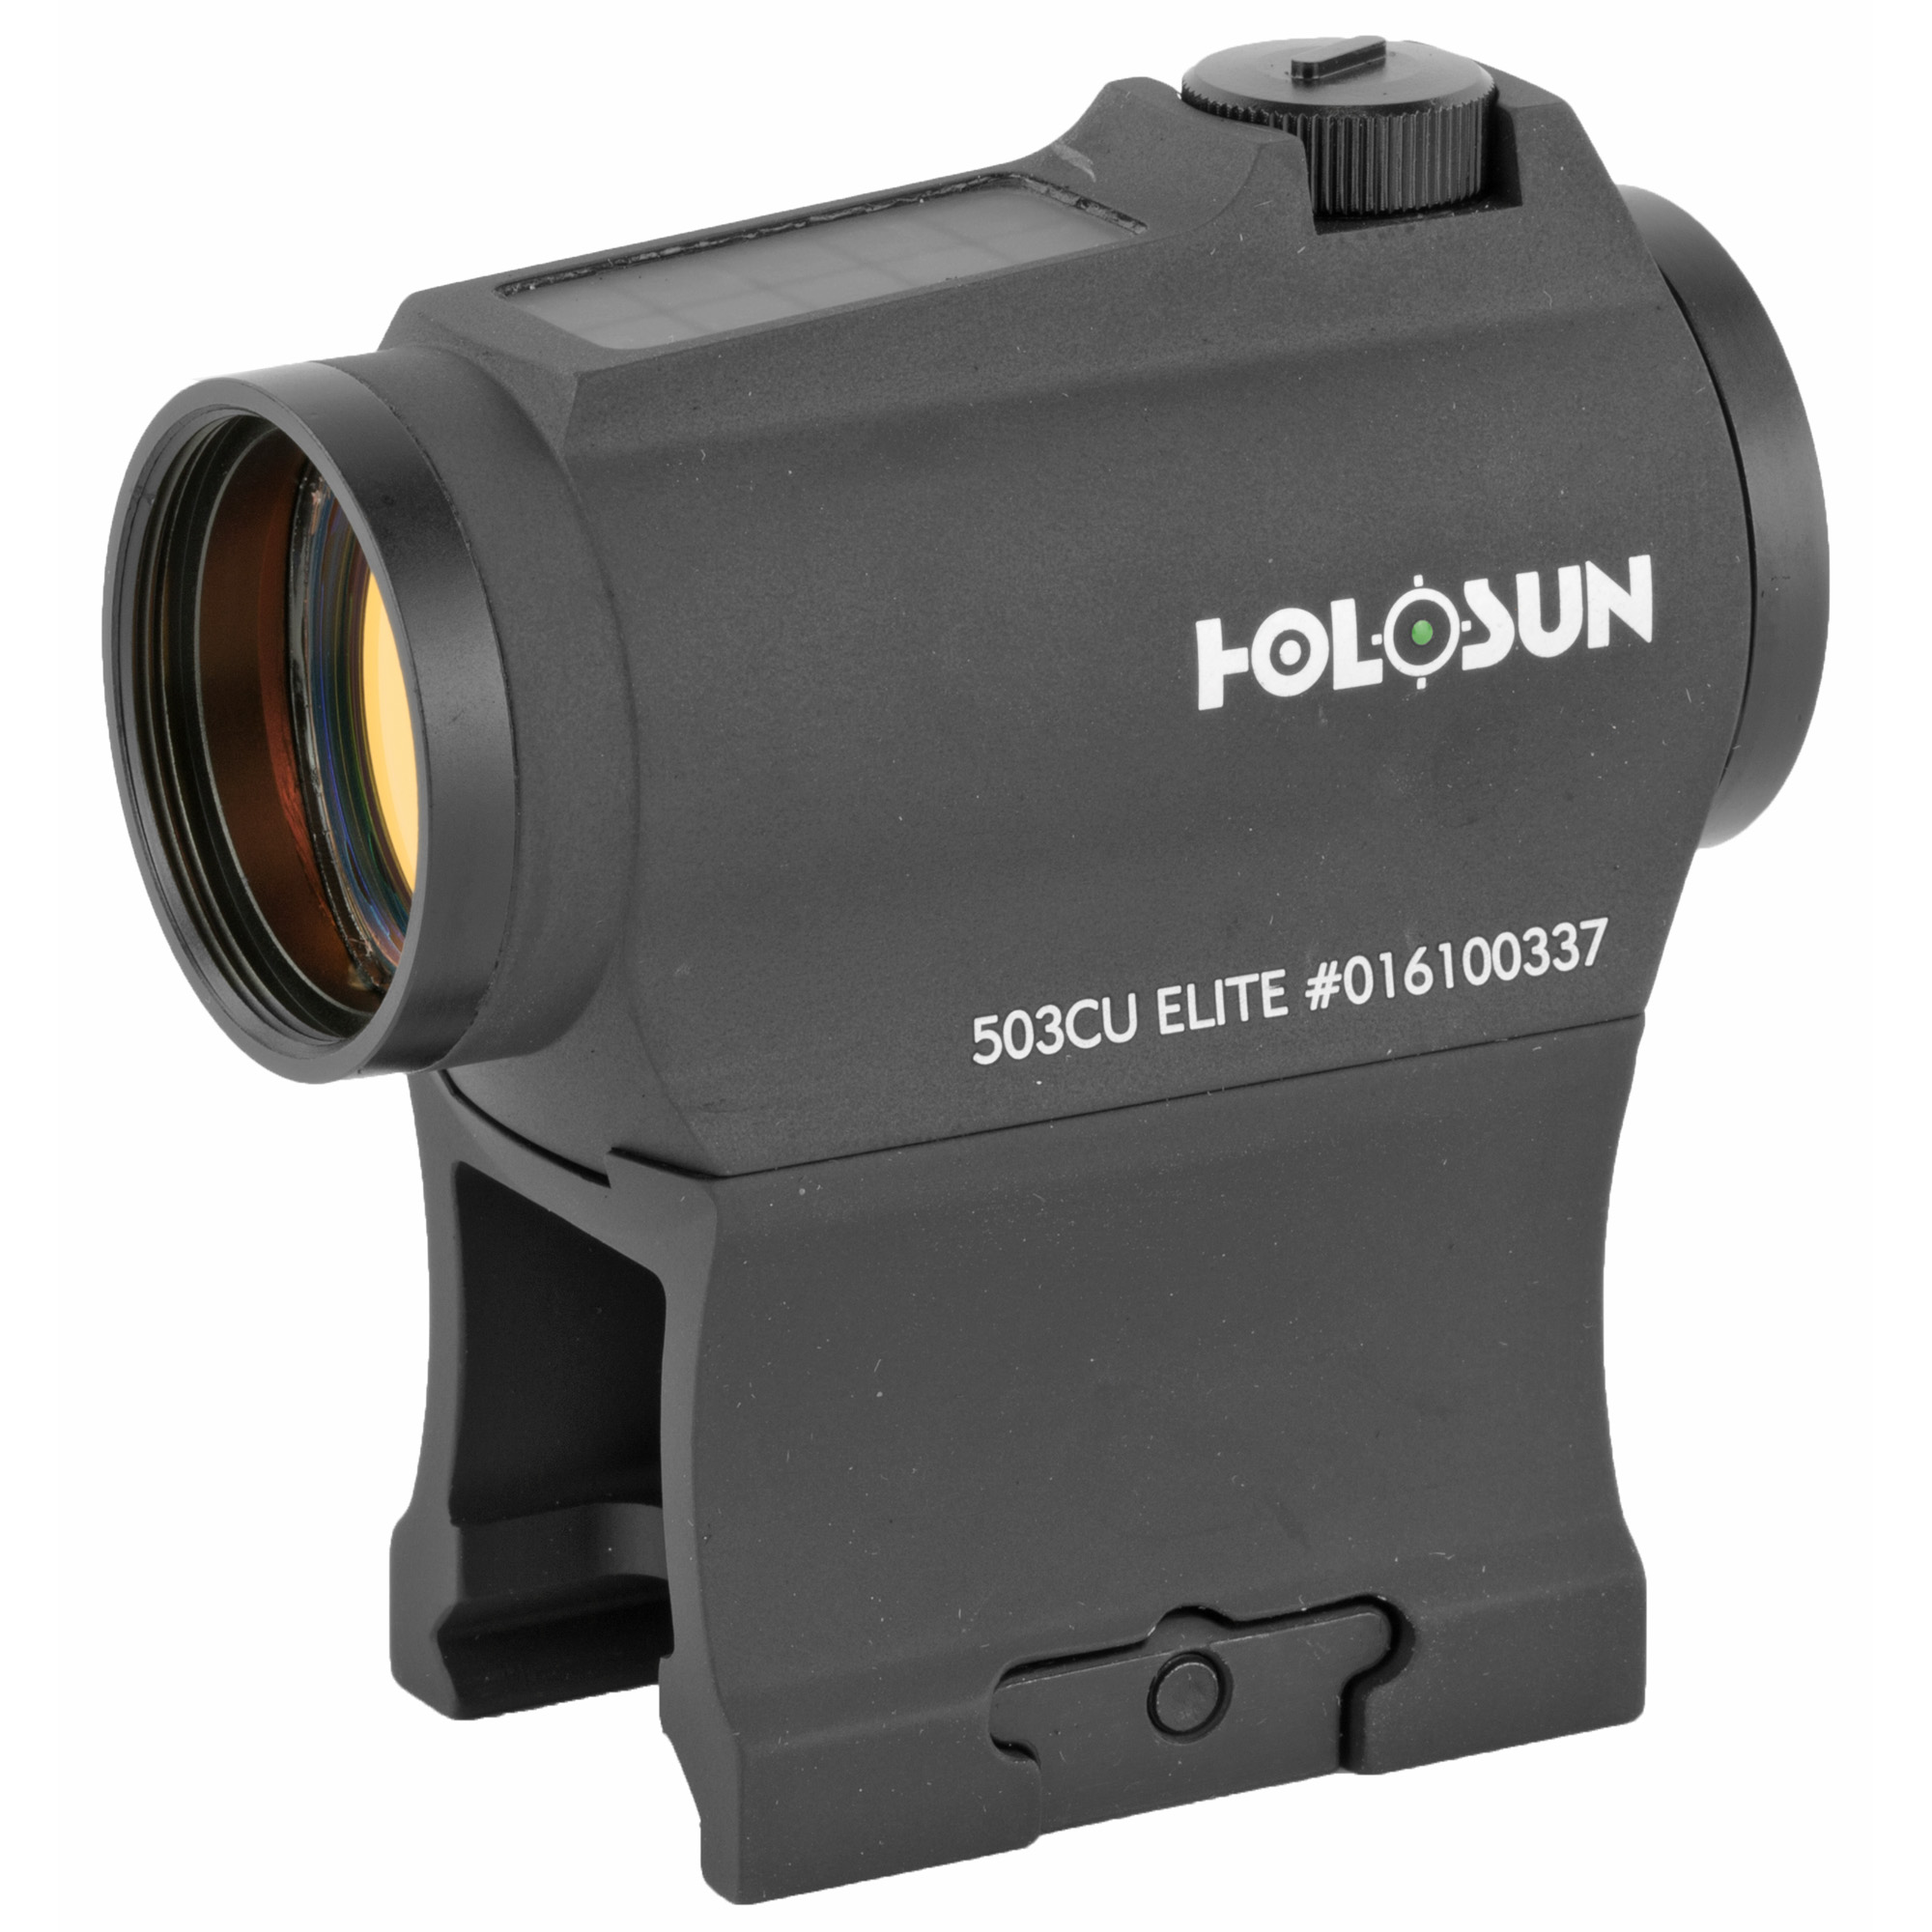 """The HE503CU-GR Elite is a new micro green dot optic equipped with a 65 MOA circle dot reticle with the option of switching to a 2MOA dot only. Our highly efficient light emitting diodes and solar panels allow Holosun solar optics to run without a battery in many lighting conditions. Additionally"""" the back-up battery lasts up to 5-years on the dot and up to 2 years on the circle dot. The """"U"""" signifies a housing design that shrouds the windage and elevation turrets on two sides."""